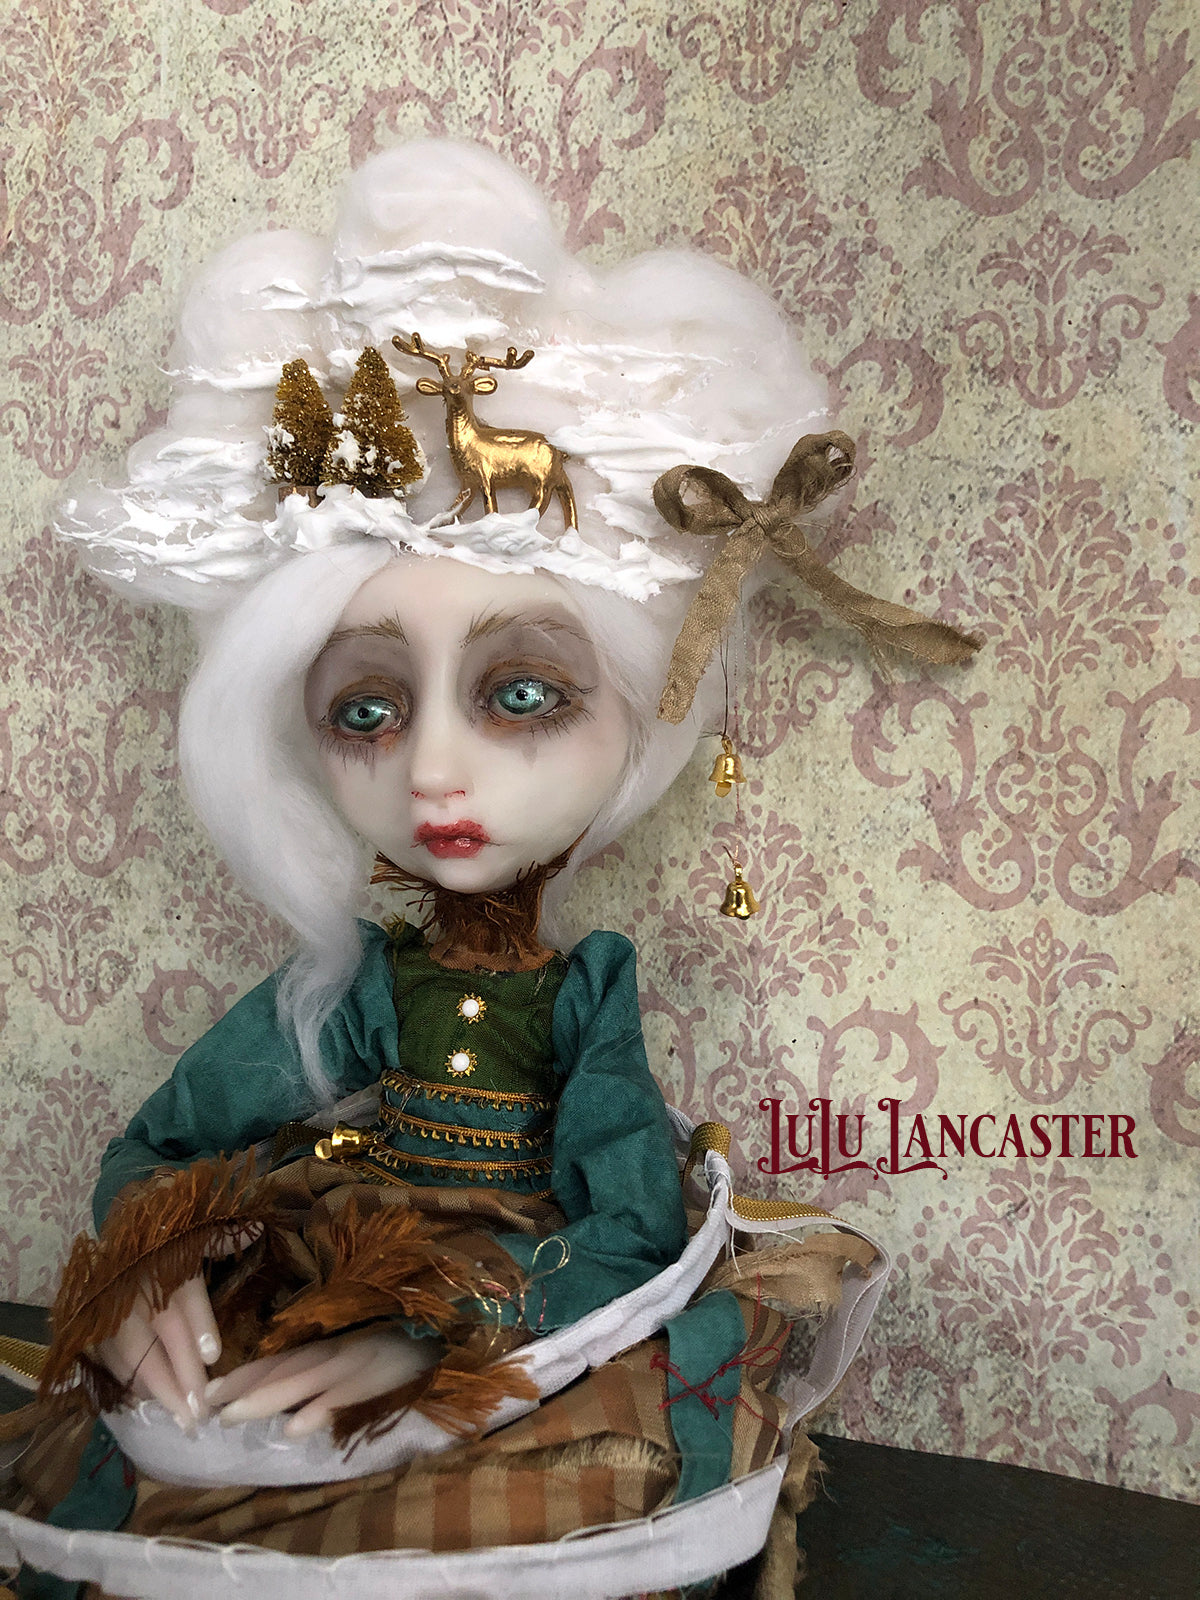 Maxie Rococo Winter Original LuLu Lancaster Art Doll